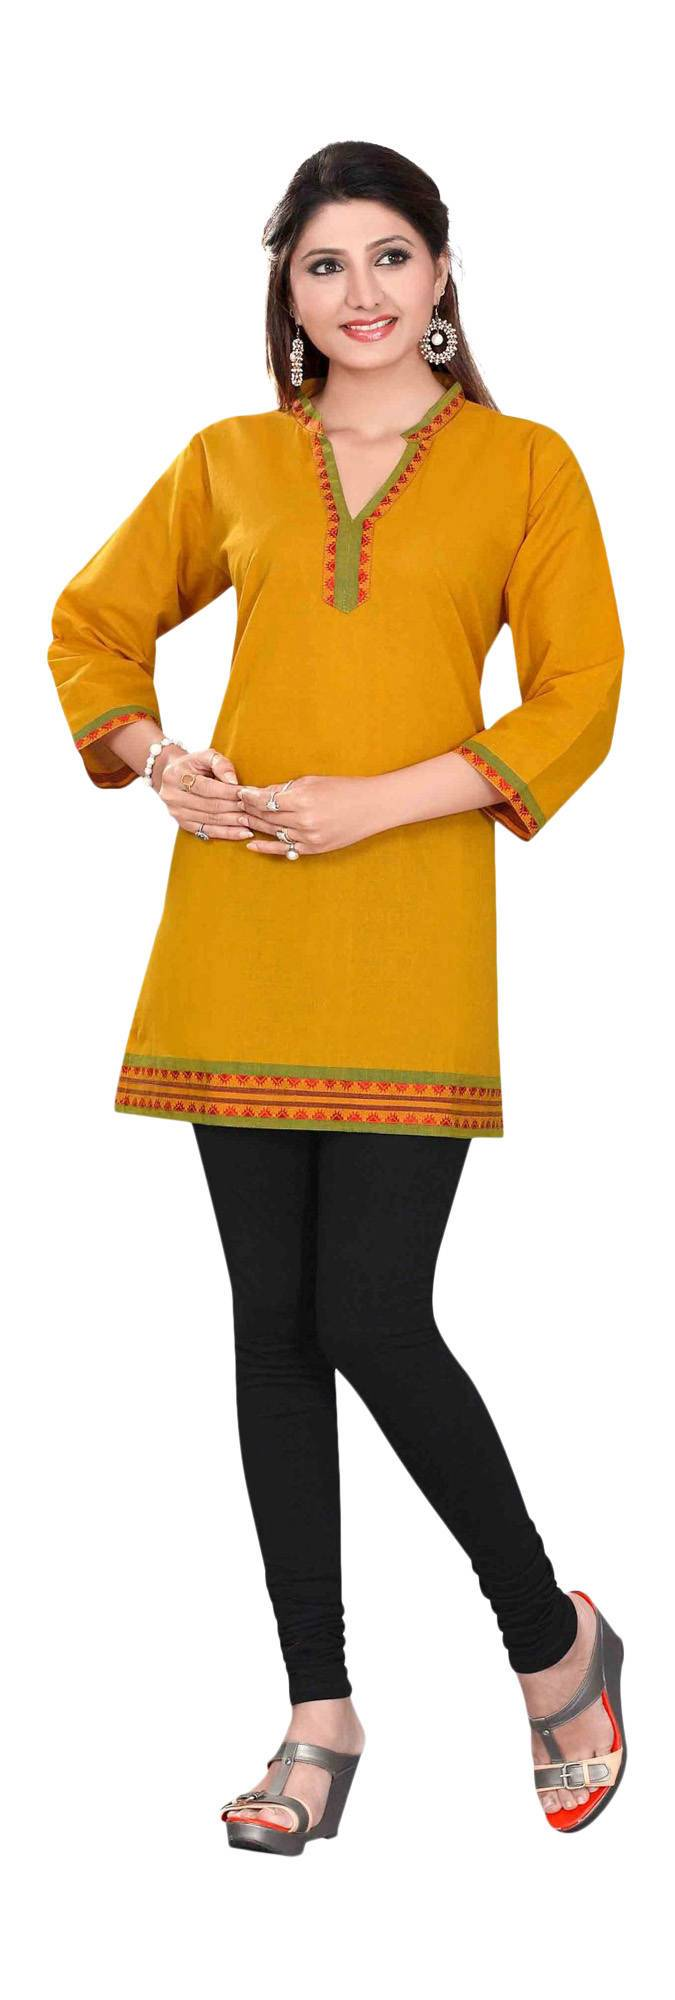 Mustard 34 sleeve Indian Cotton KurtiTunic with Golden neckline-Small